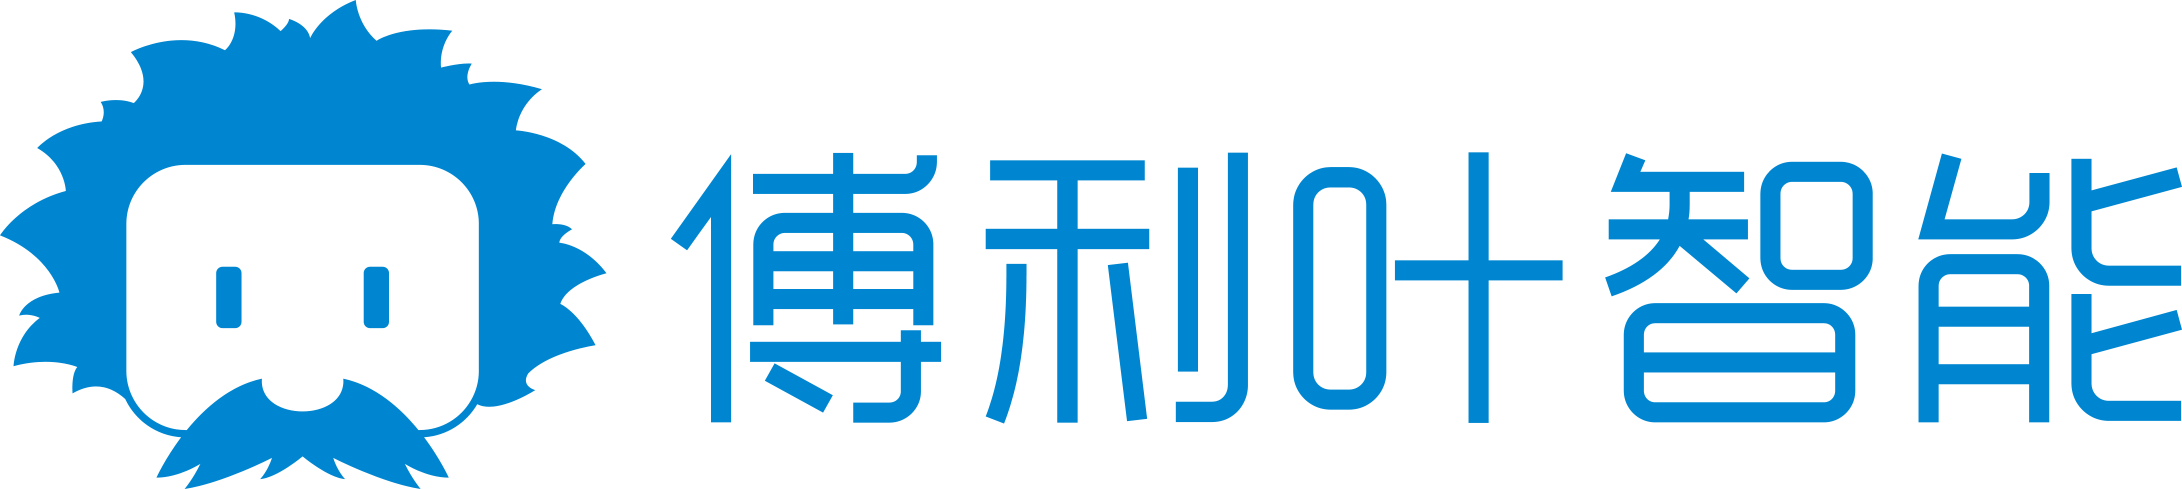 Shanghai Fourier Intelligence Co., Ltd.